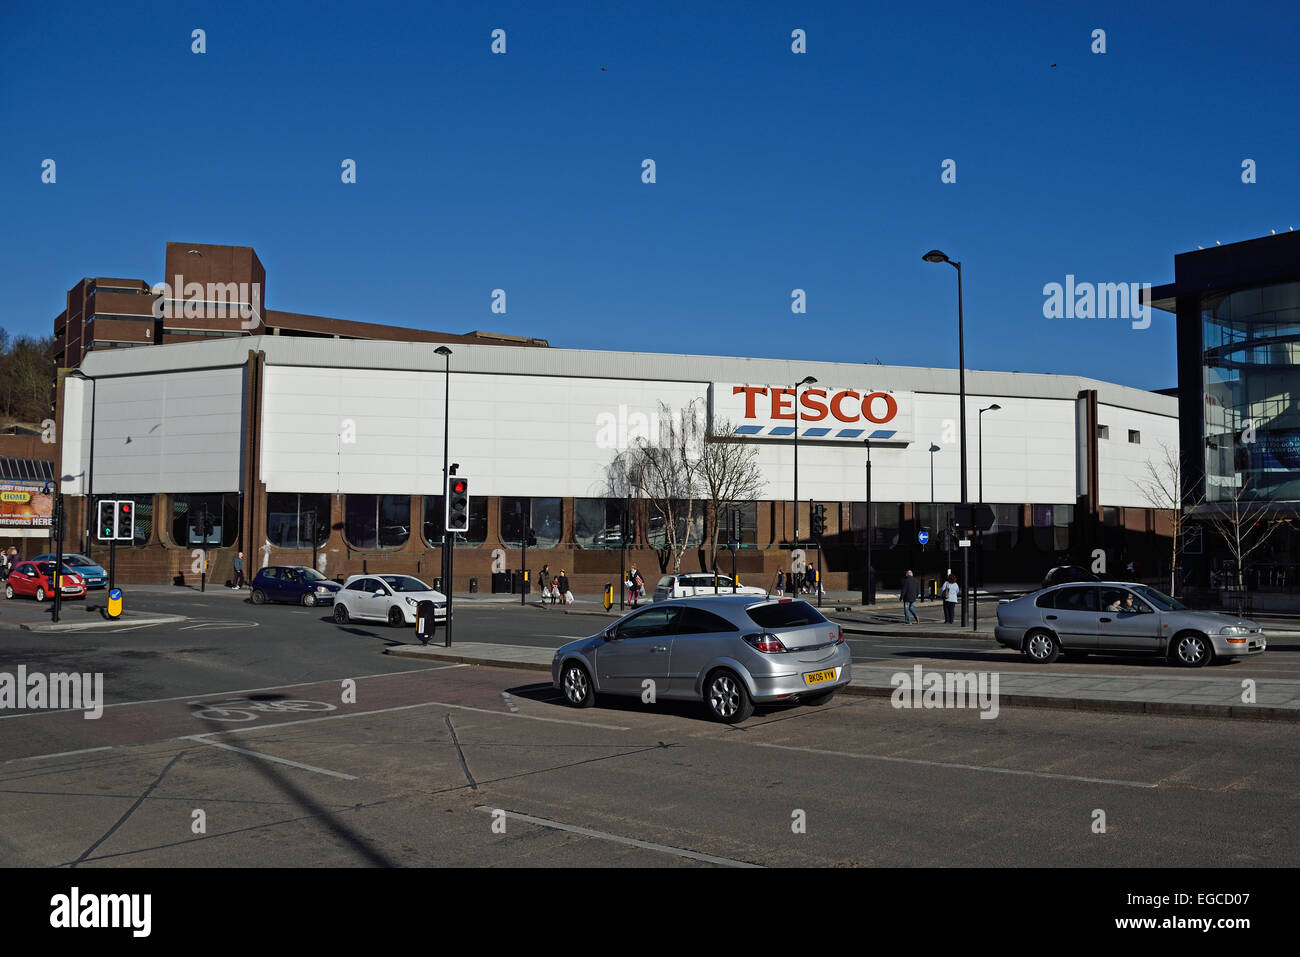 Tesco Chatham Superstore.  One of 43 unprofitable stores which Tesco have marked for closure. - Stock Image